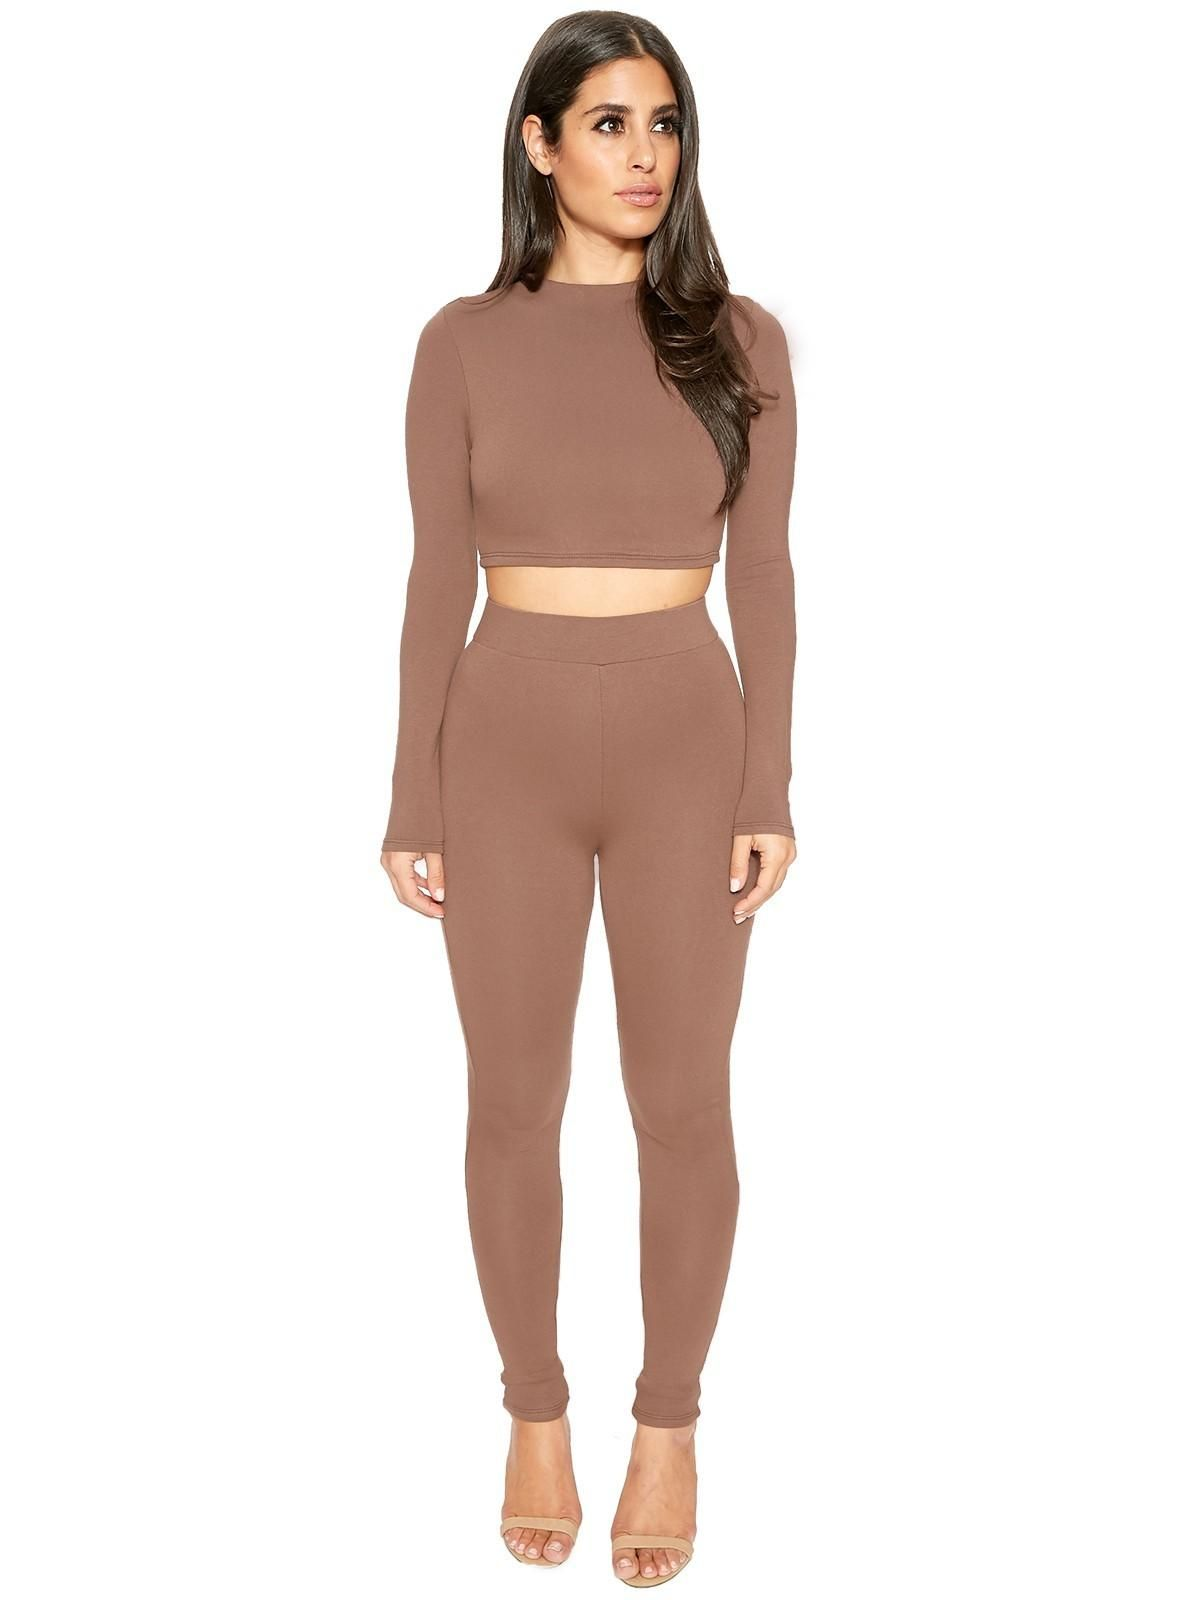 Women s fashion top 9 must haves in the wardrobe lulu rose - Naked Wardrobe Feelin Oh So Tight Set Sets Womens